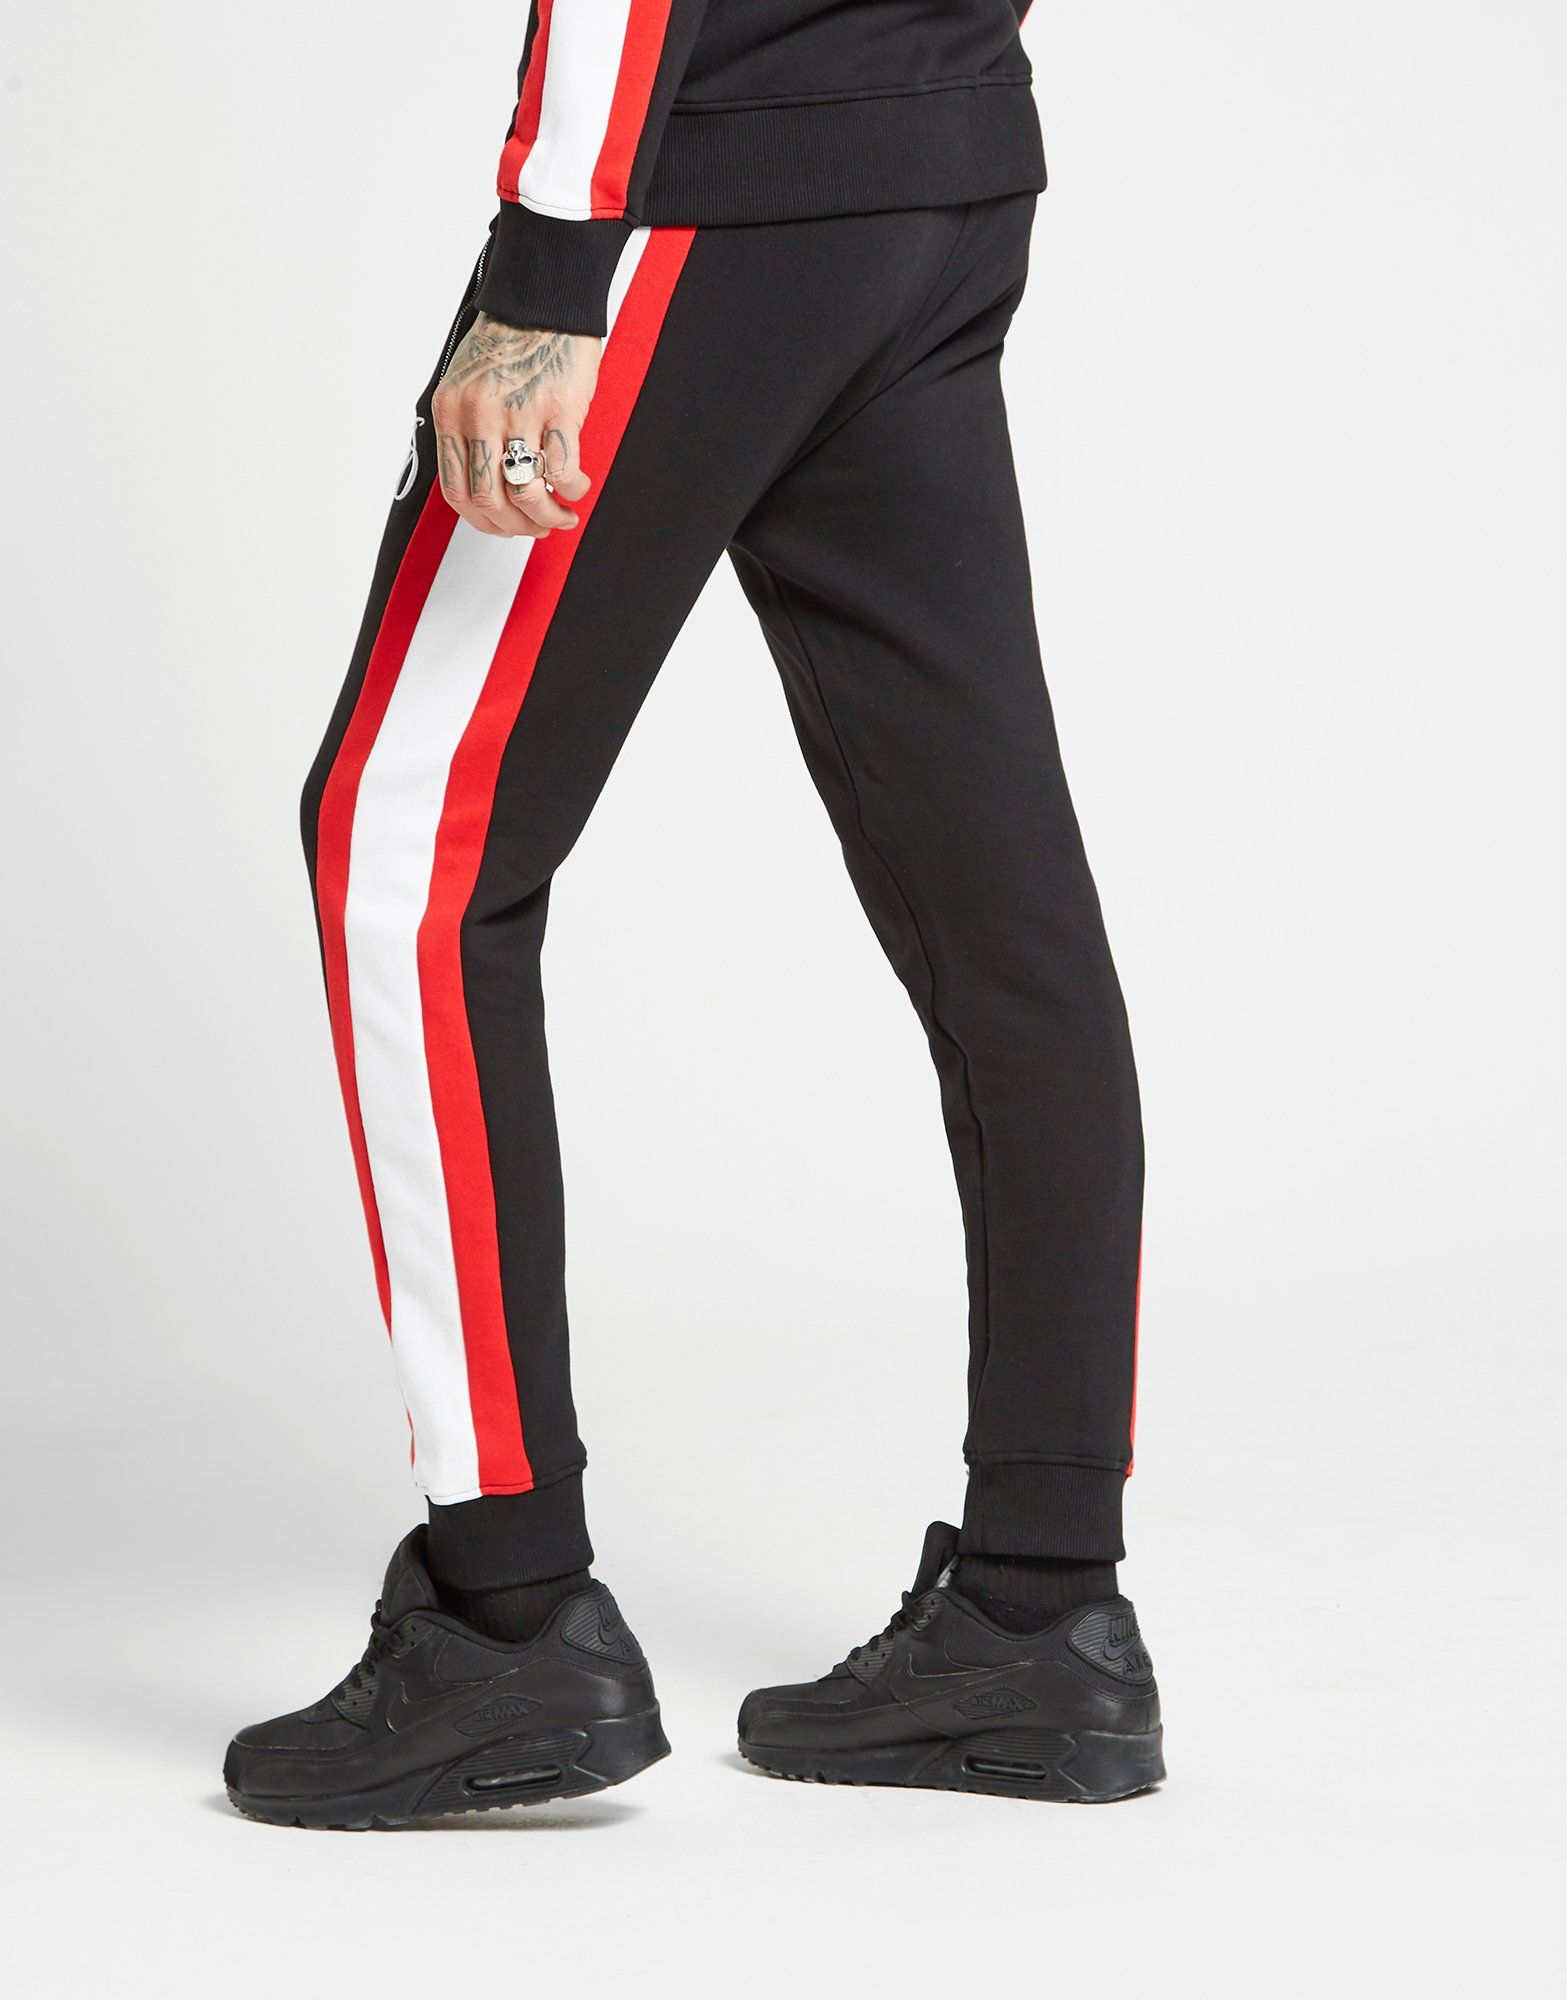 Supply & Demand Justice Joggers